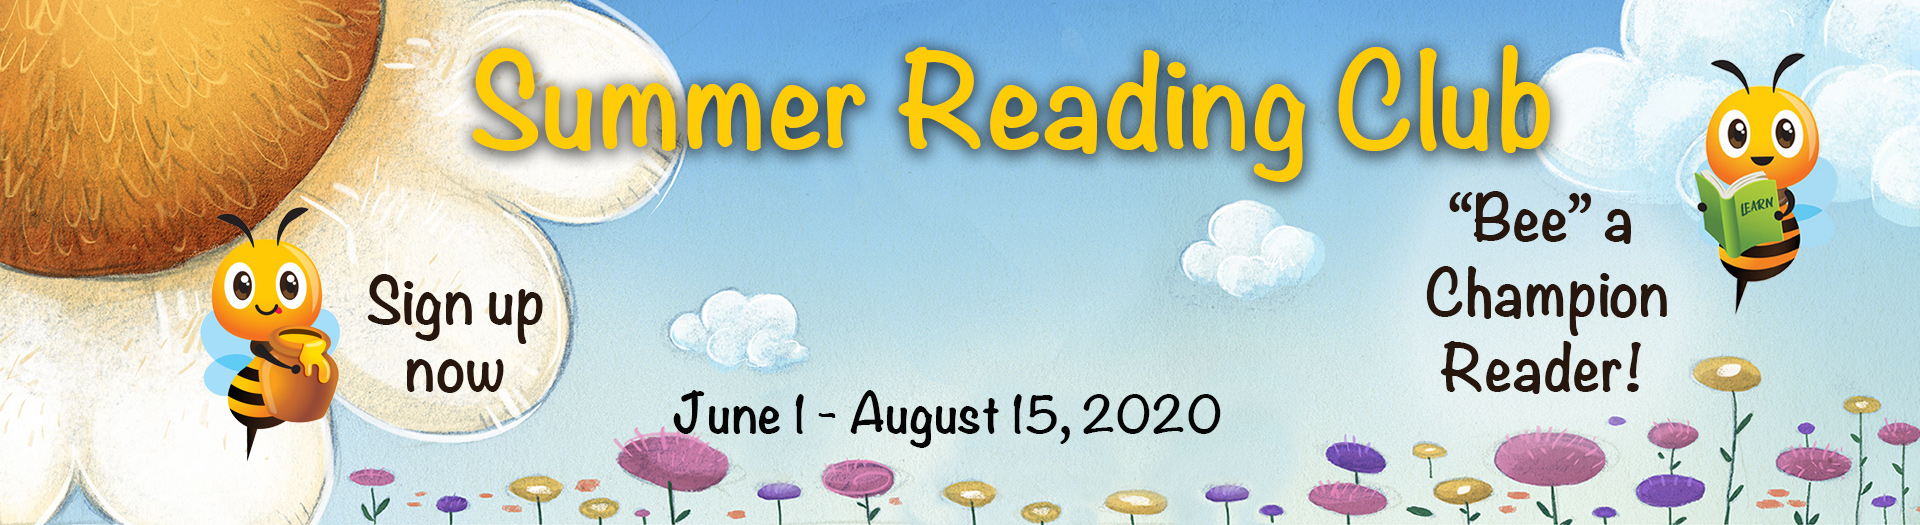 Bee summer reading library website banner